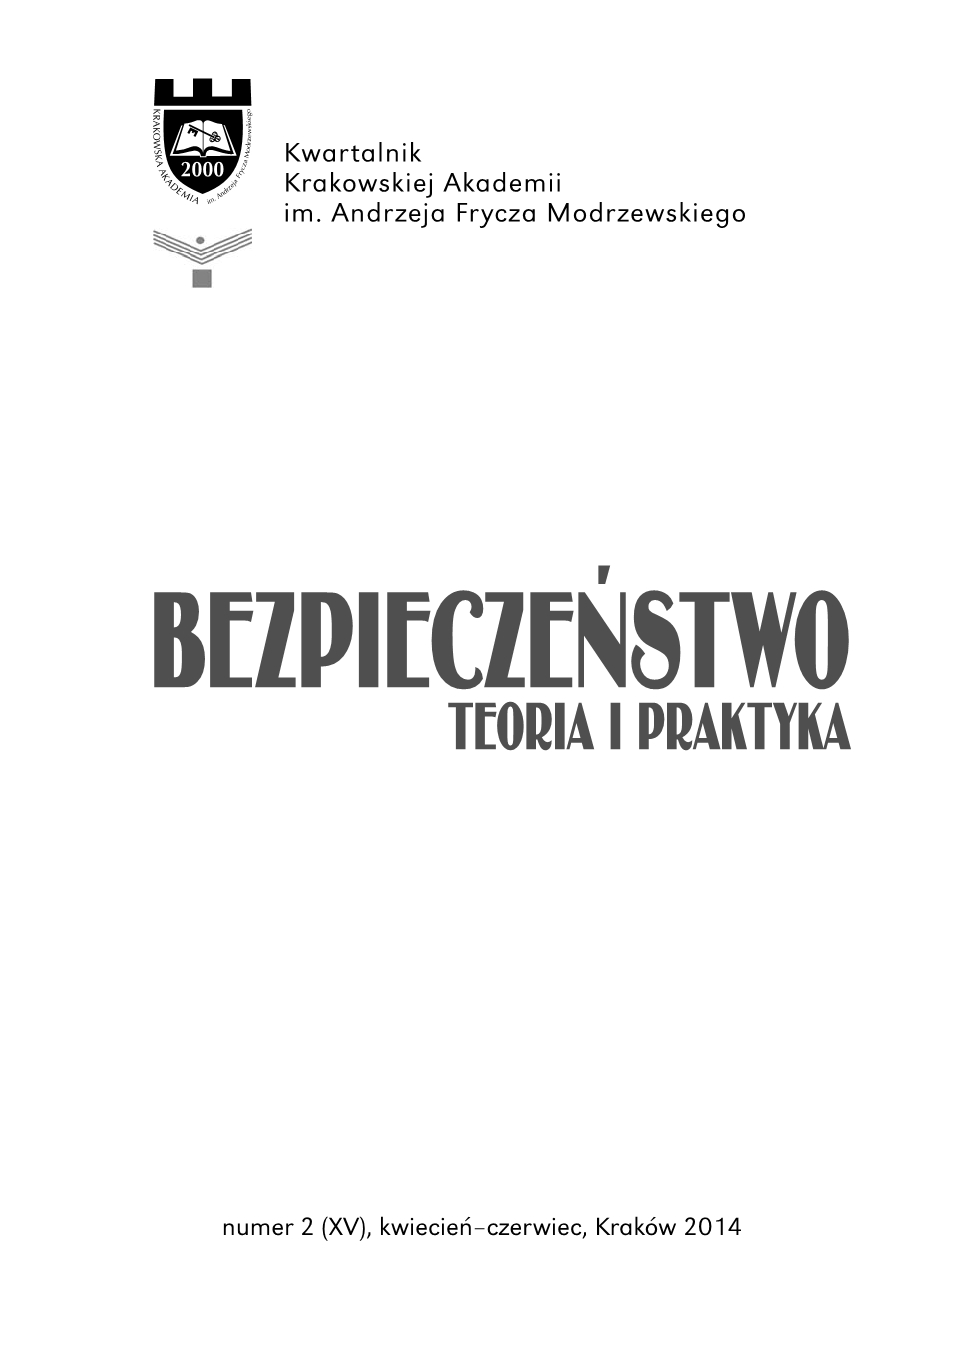 Selected elements concerning the transformation and change of the Armed Forces of the Republic of Poland